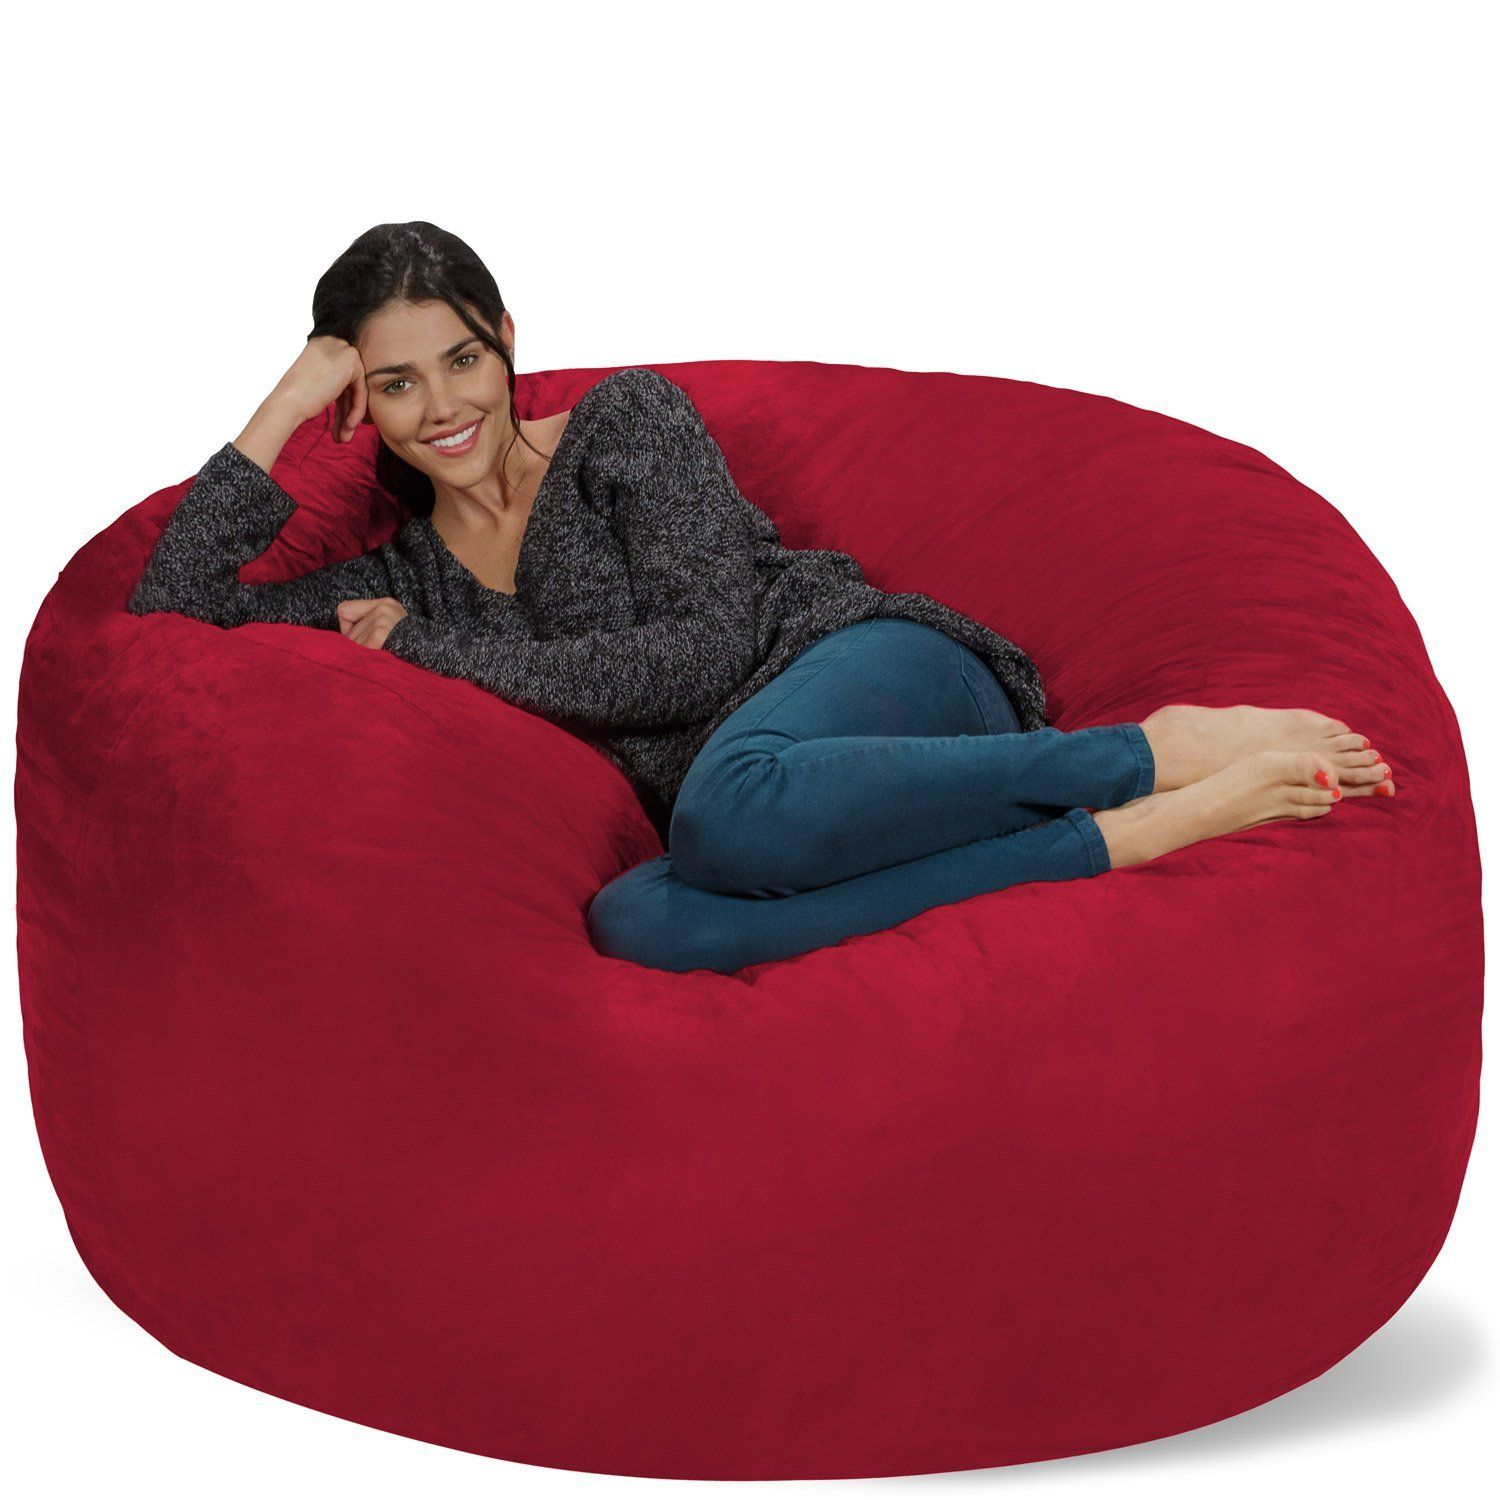 That Shark Tank Bean Bag Chair That Turns Into a Bed Is on